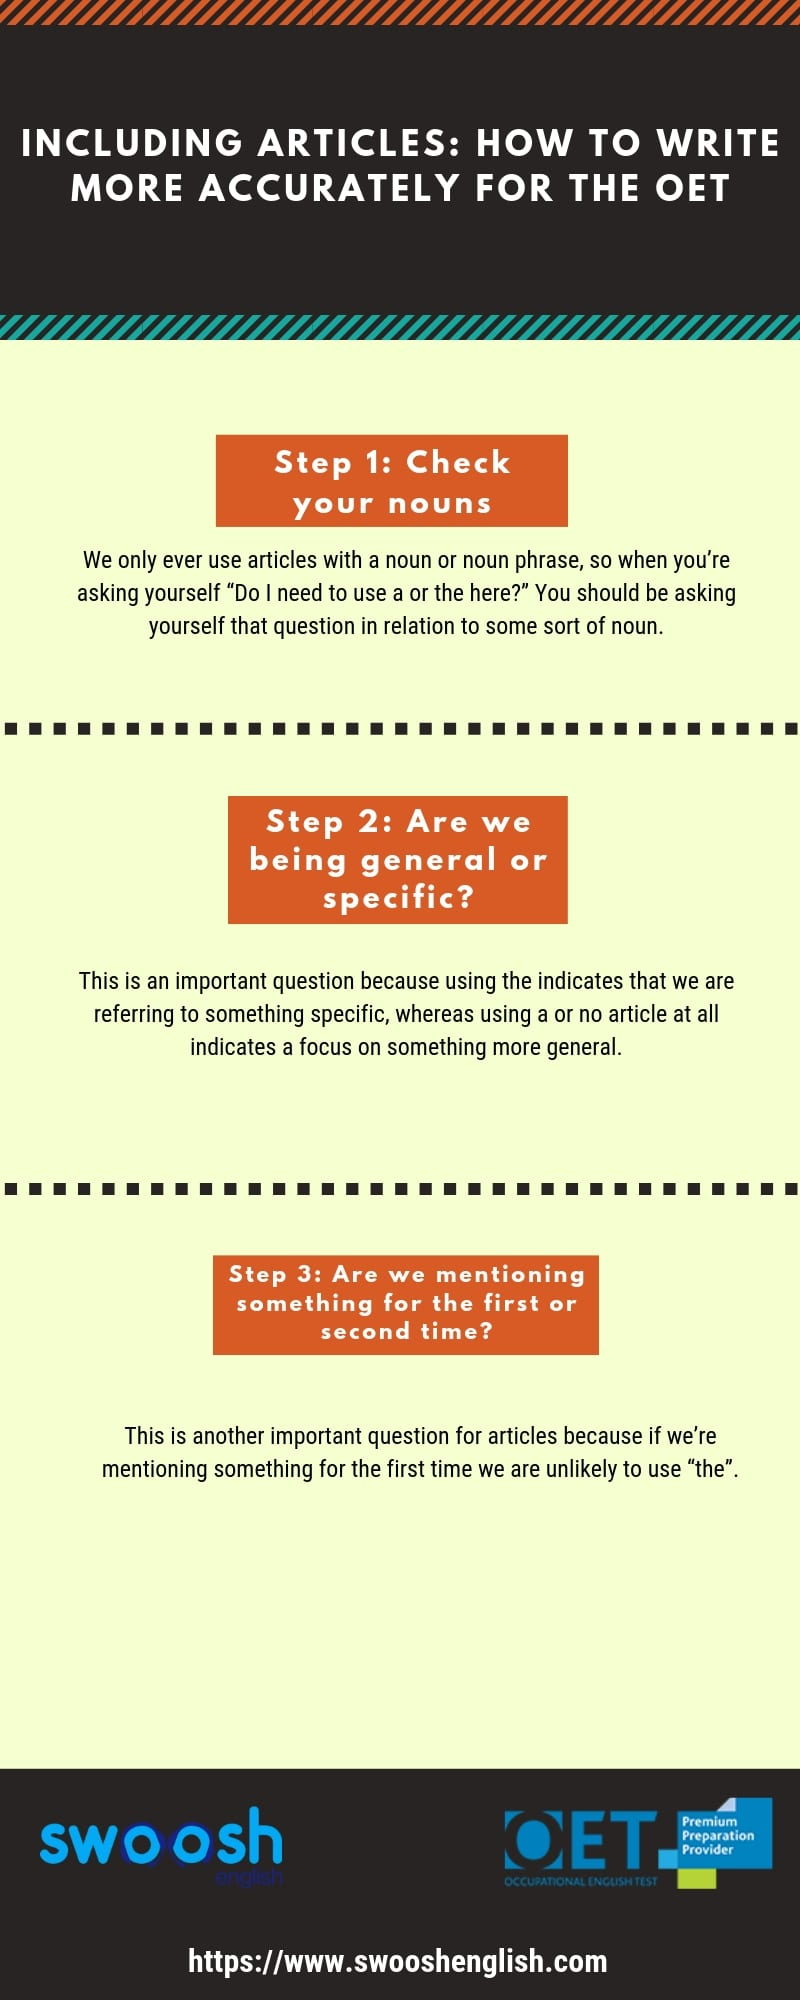 Including Articles: How to write more accurately for the OET infographic